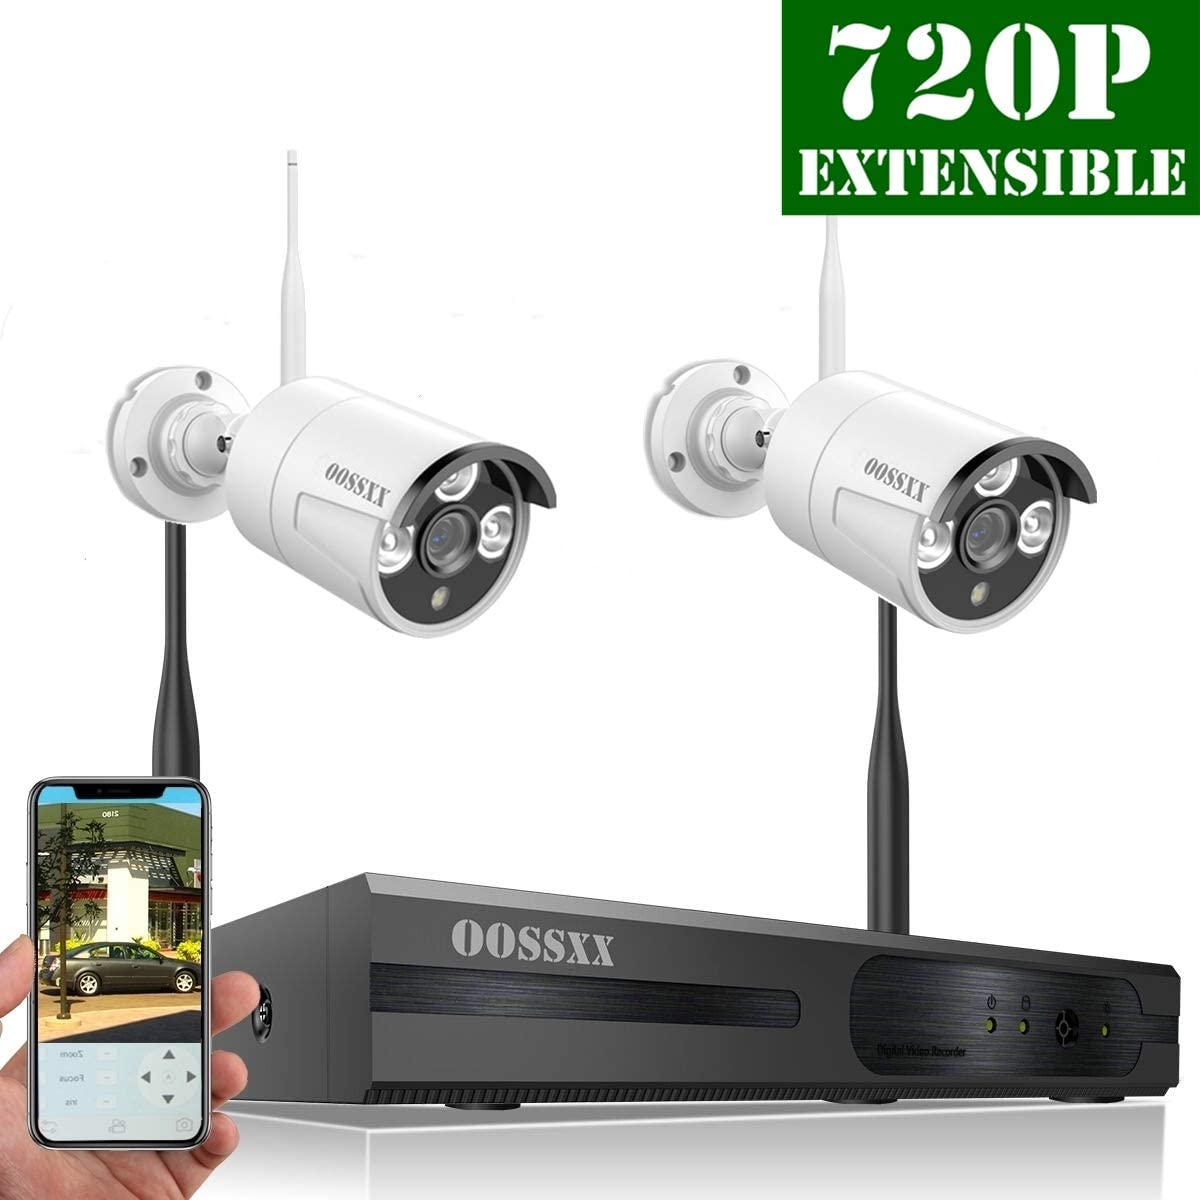 2018 Update HD 960P 4-Channel OOSSXX Wireless System IP Security Camera System 2Pcs 720P 1.0 Megapixel Wireless Indoor Outdoor IR Bullet IP Cameras,P2P,App